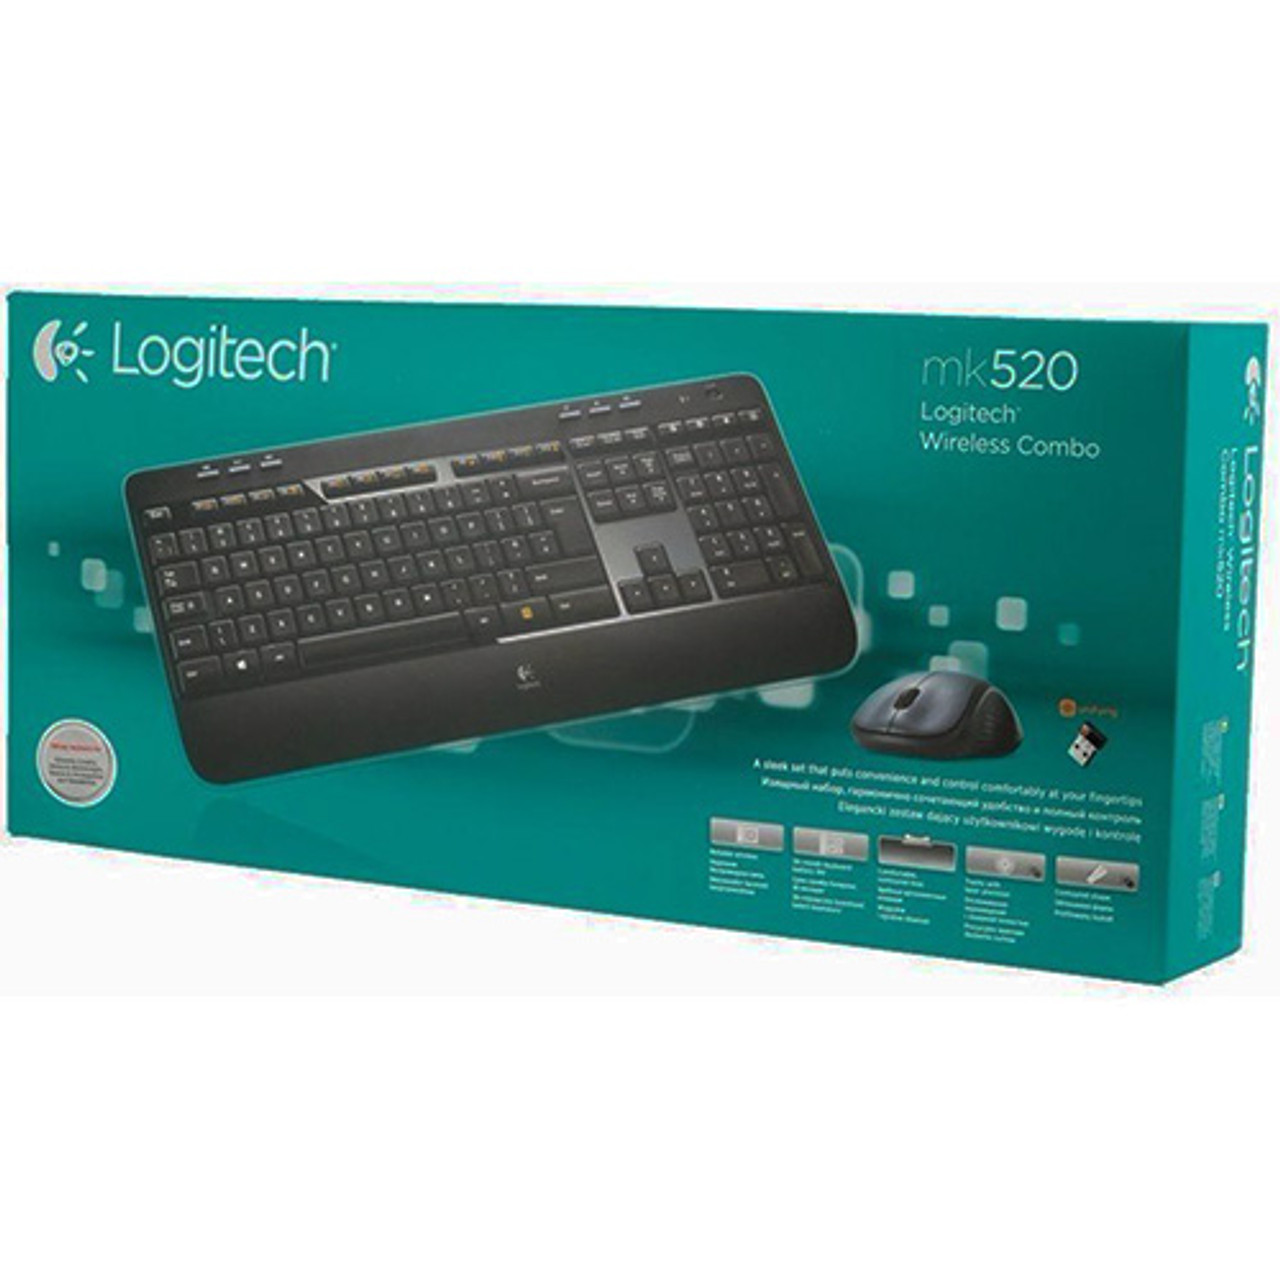 023d8b96688 Logitech MK520 Wireless Keyboard and Mouse Combo — Keyboard and Mouse, Long  Battery Life, Secure 2.4GHz ...